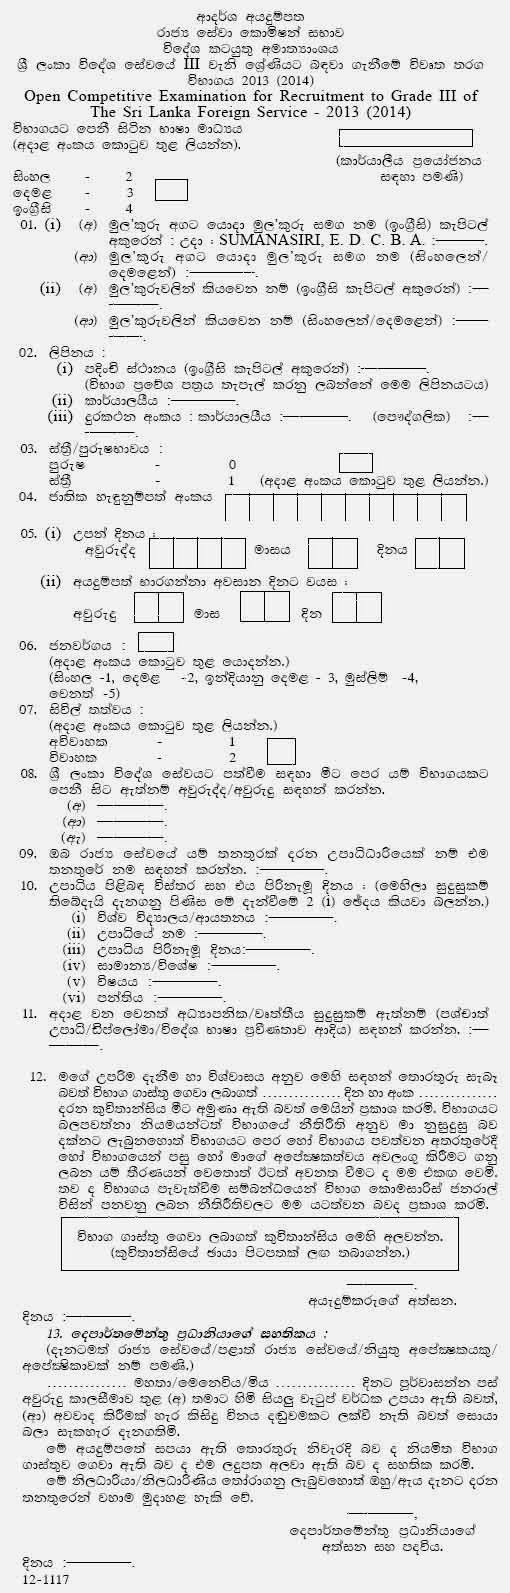 institute of business studies application form